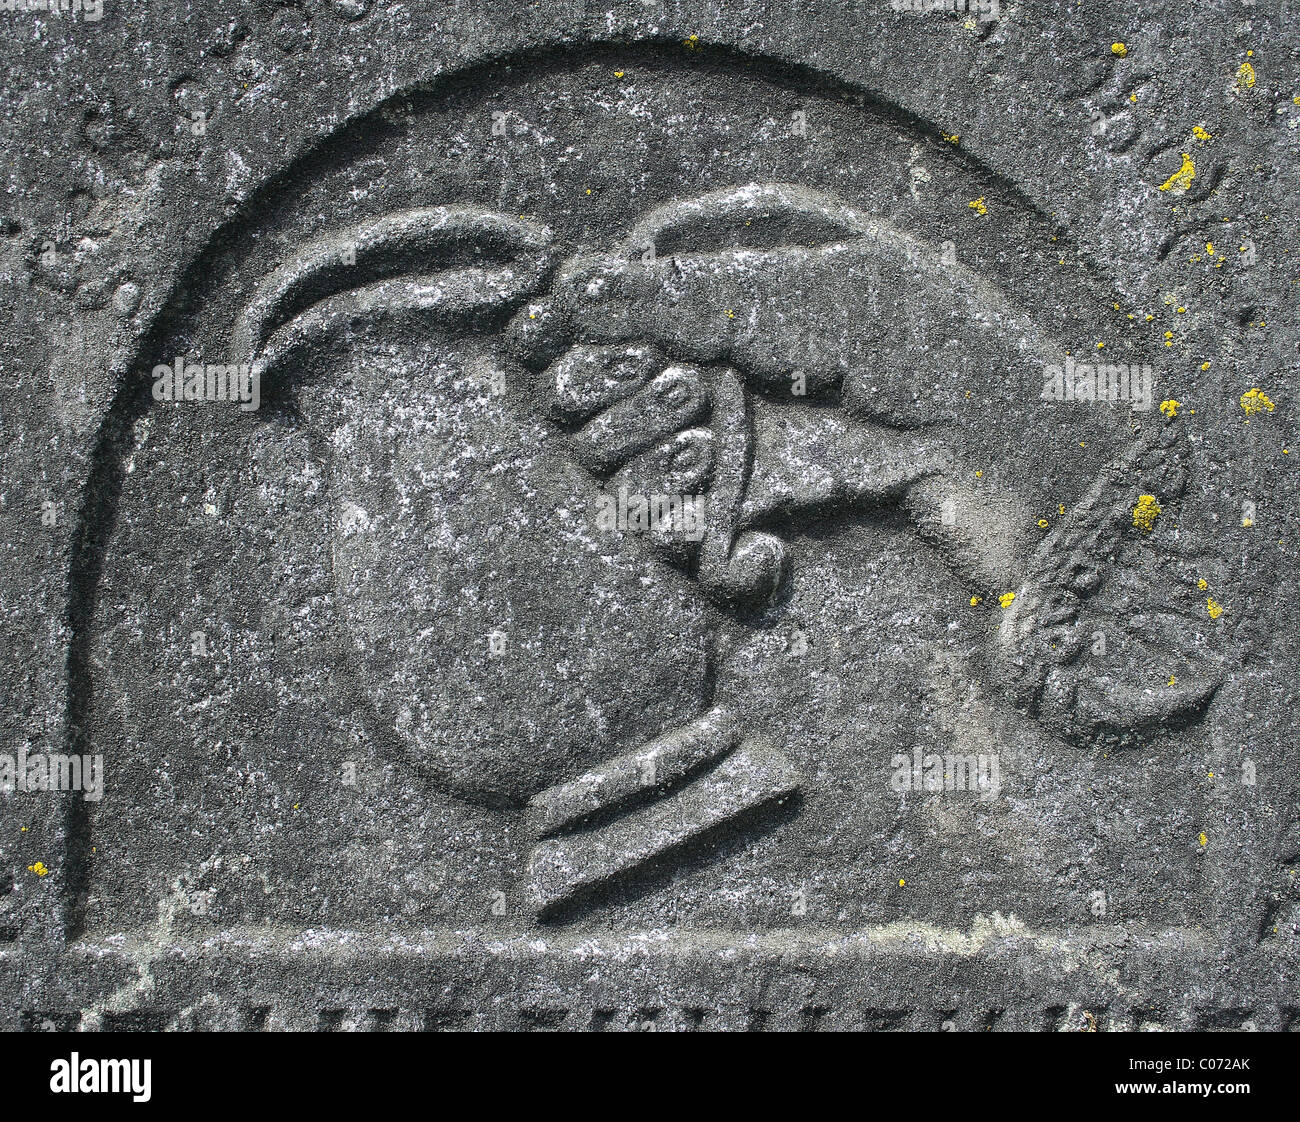 close up of symbol from Jewish tombstone - Stock Image